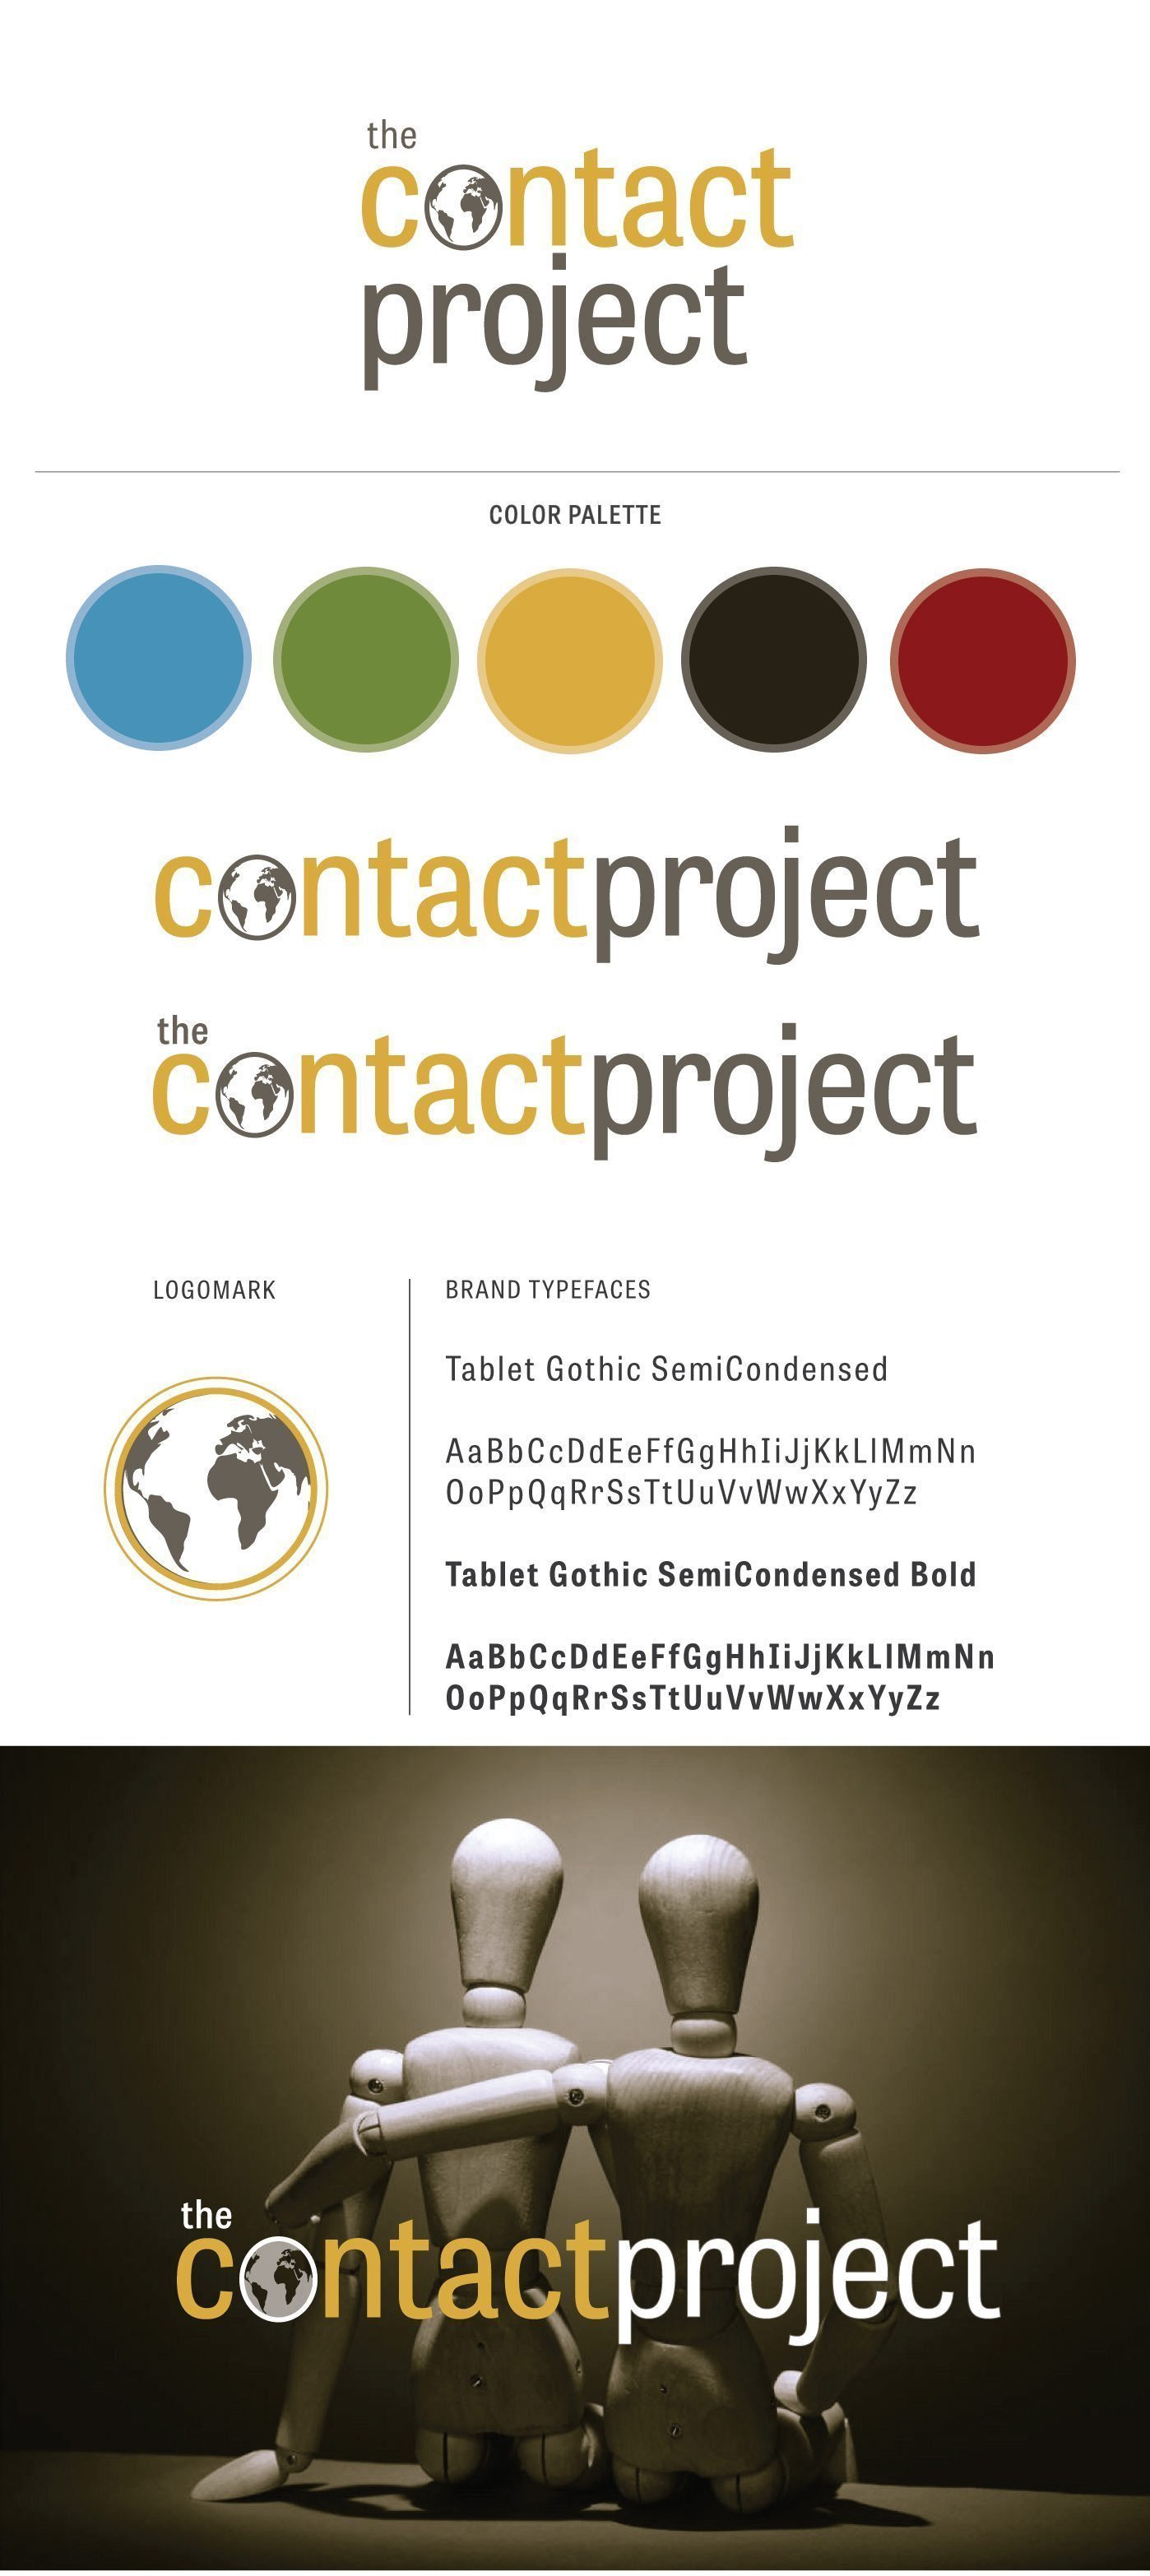 Contact-Project-Brand-Board-Revised